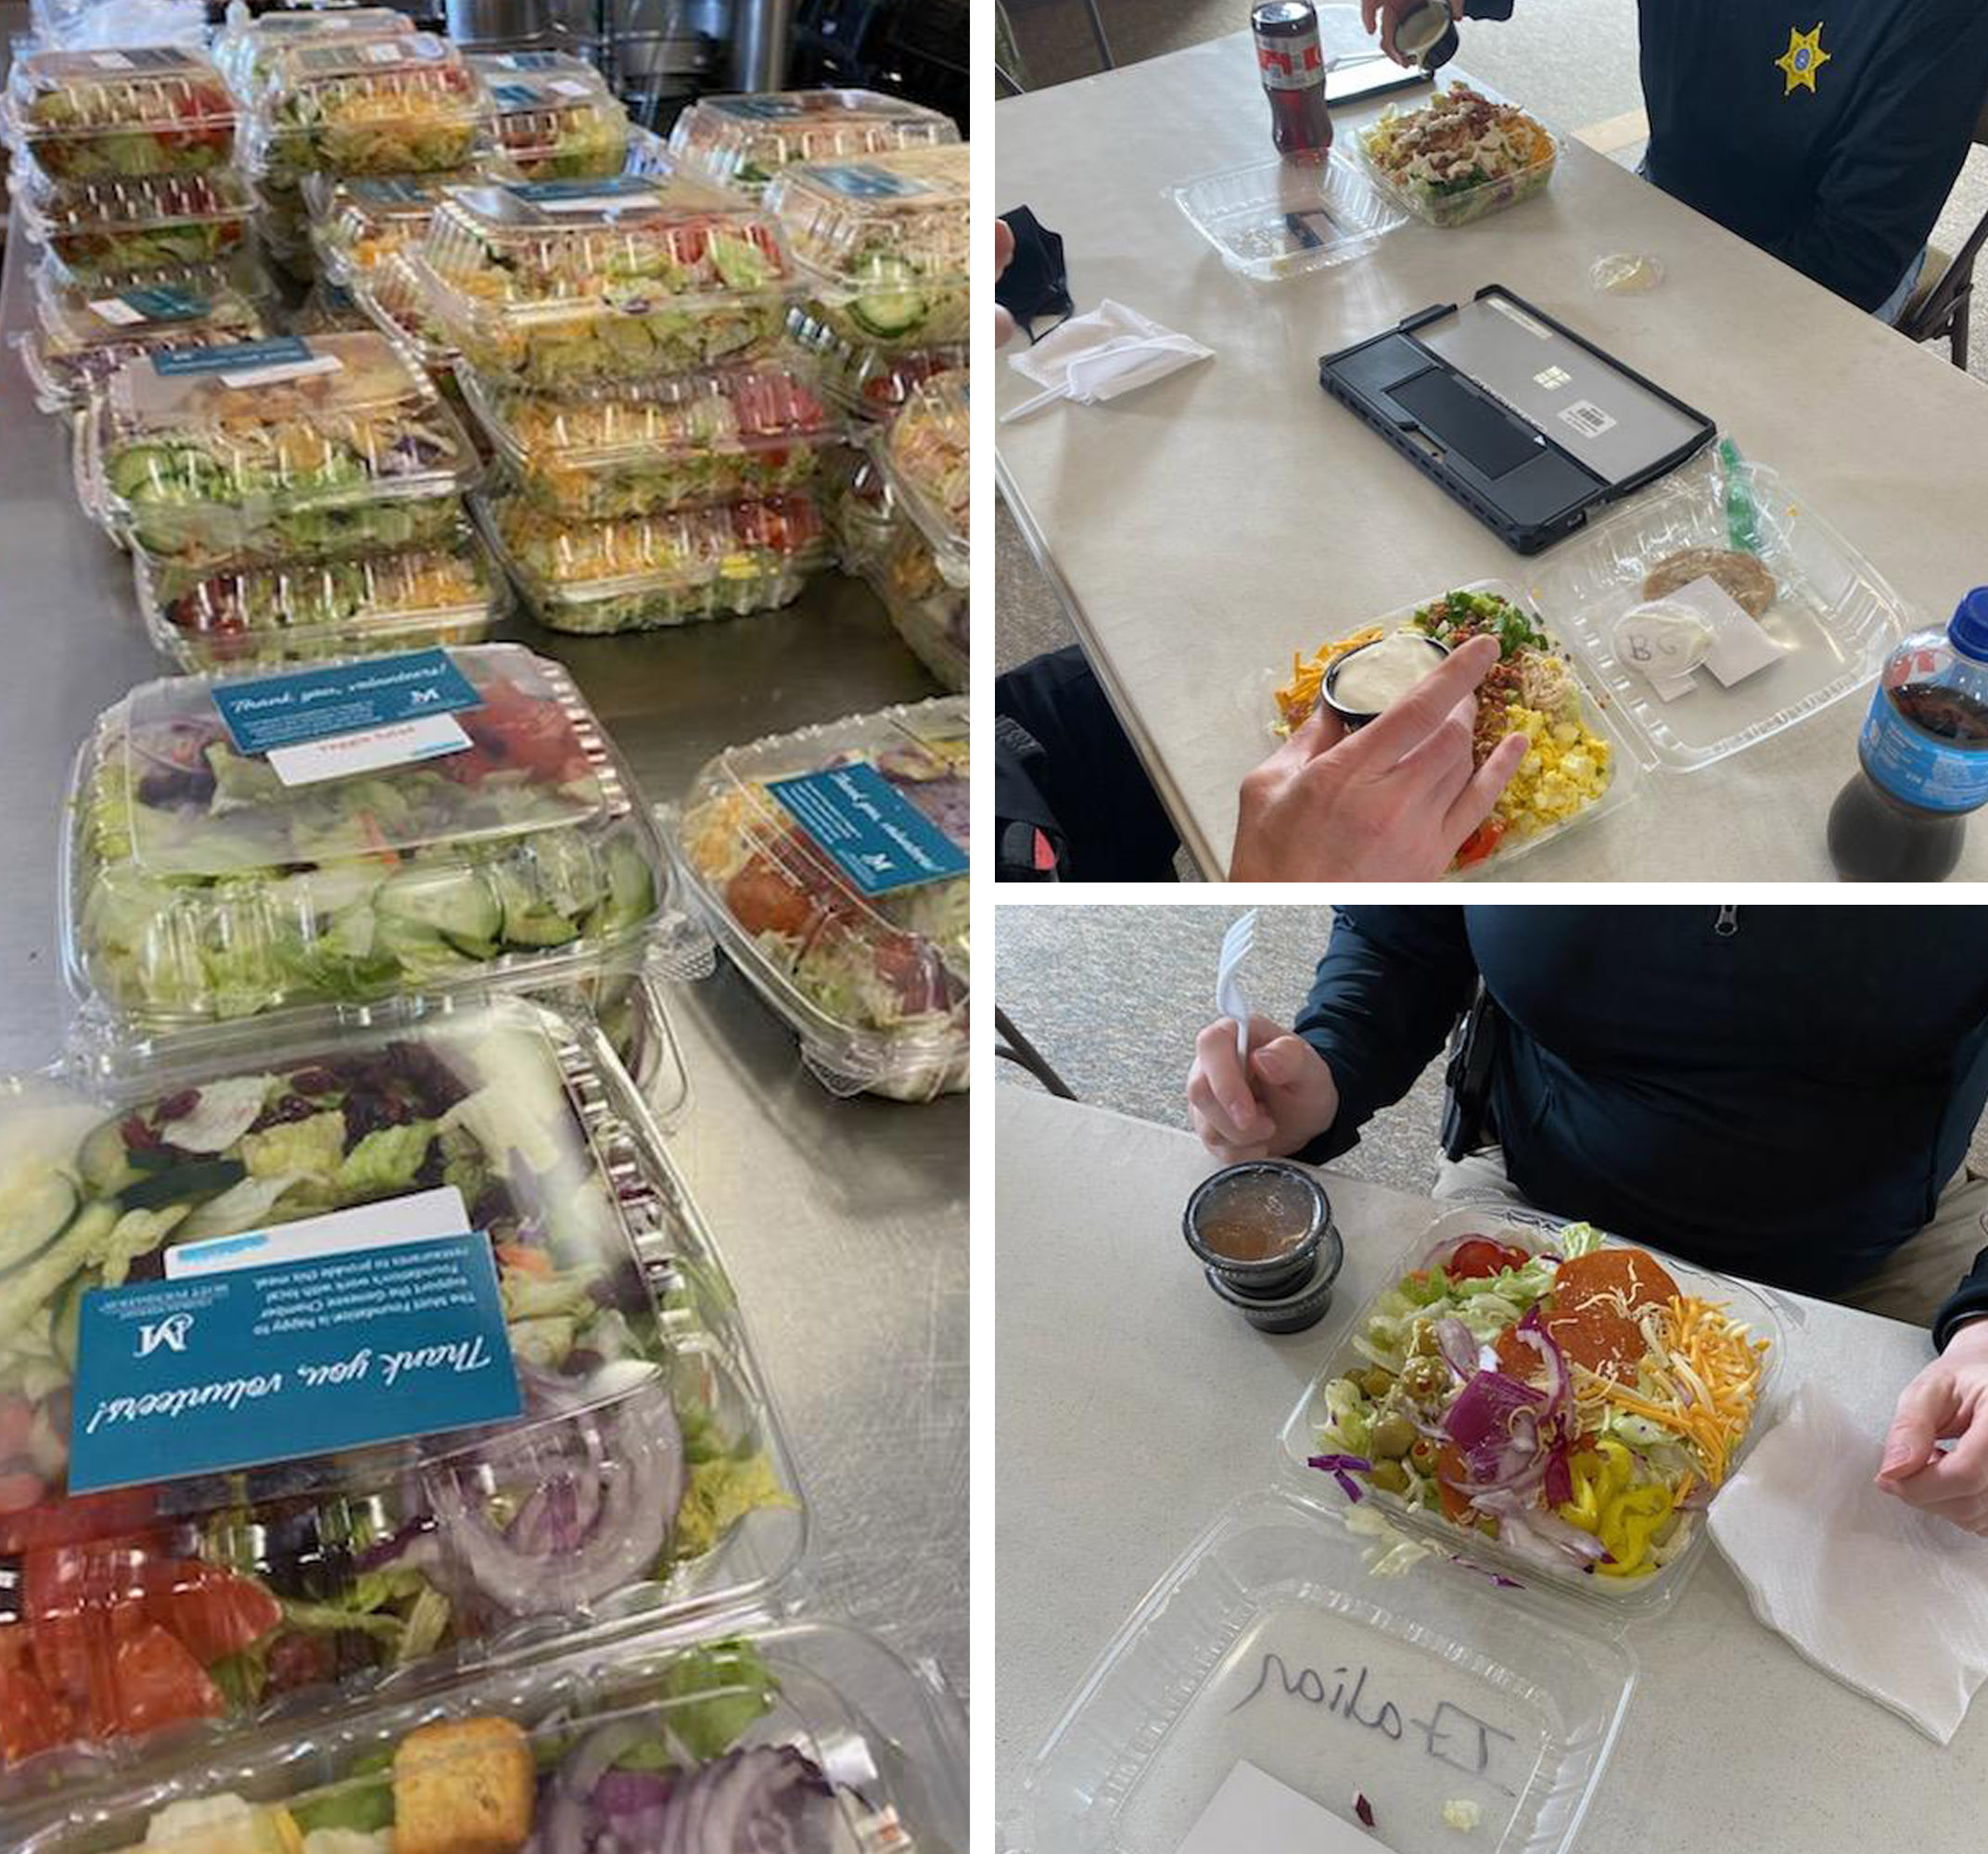 Meals provided by the Mott Foundation for volunteers at a clinic